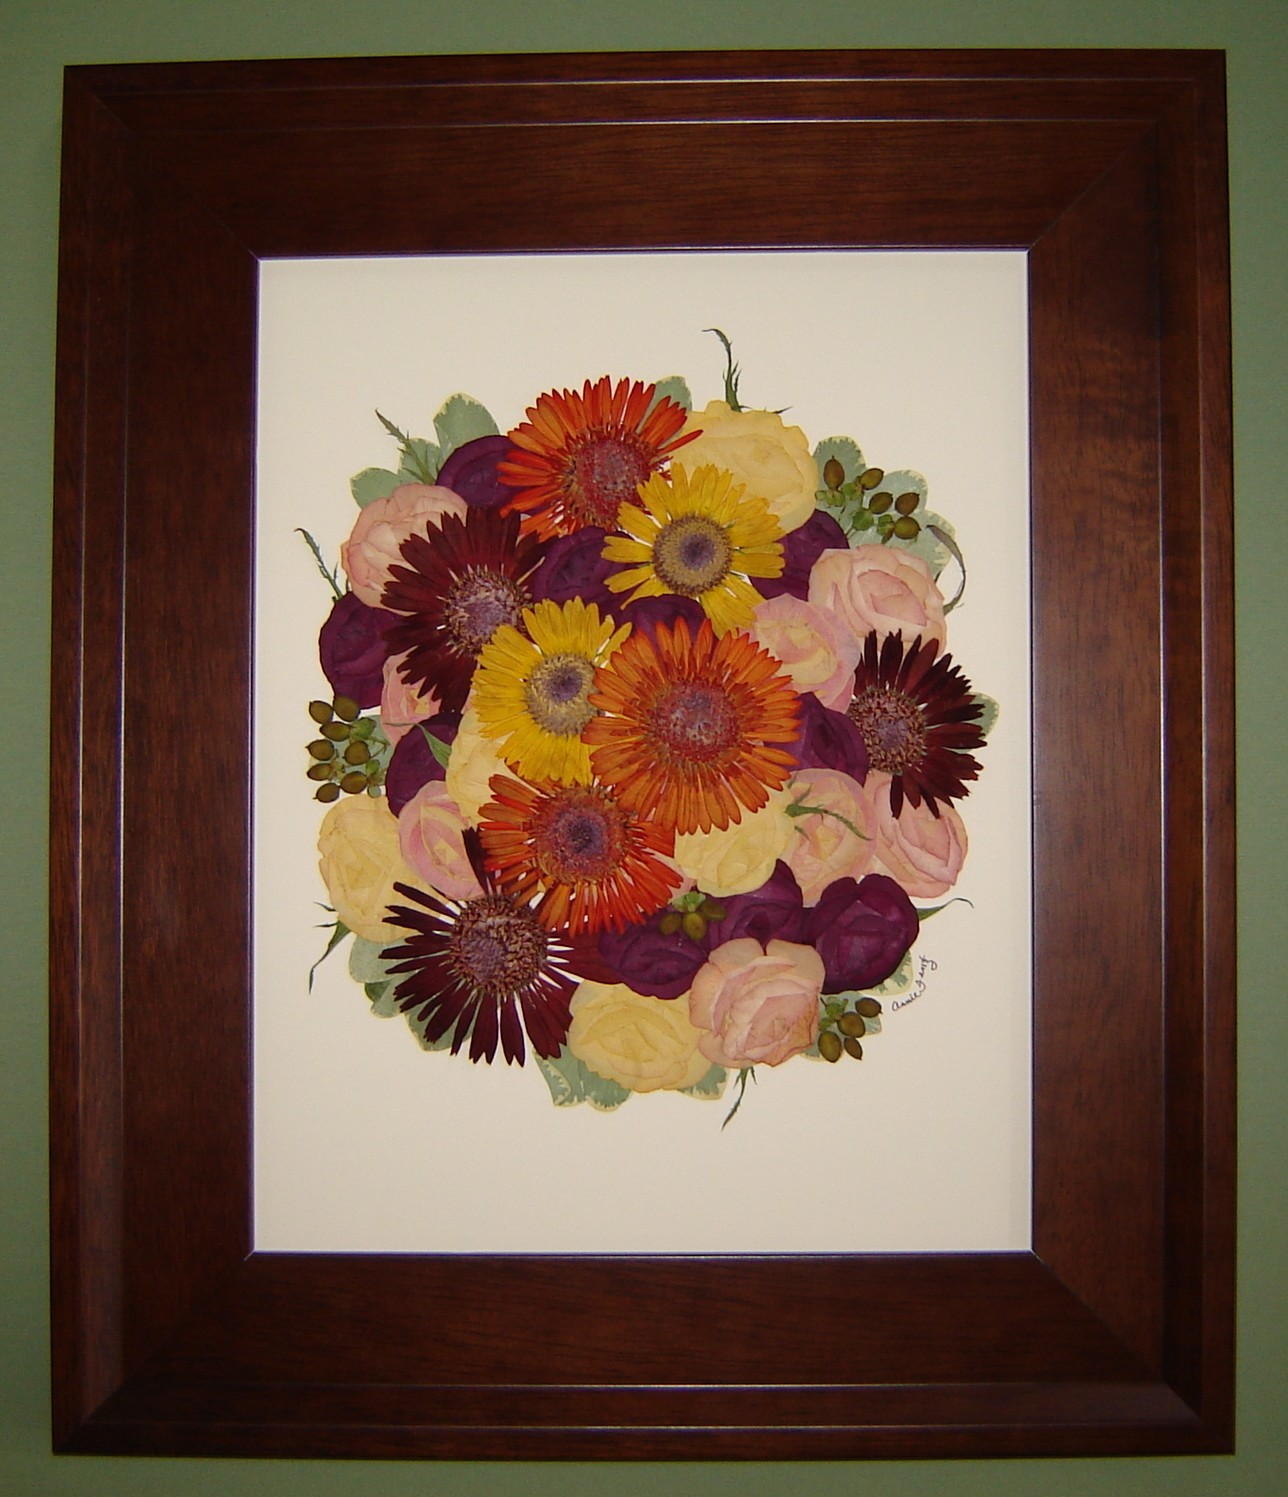 Pressed Wedding Flowers: Pressed Garden: Bridal Bouquet